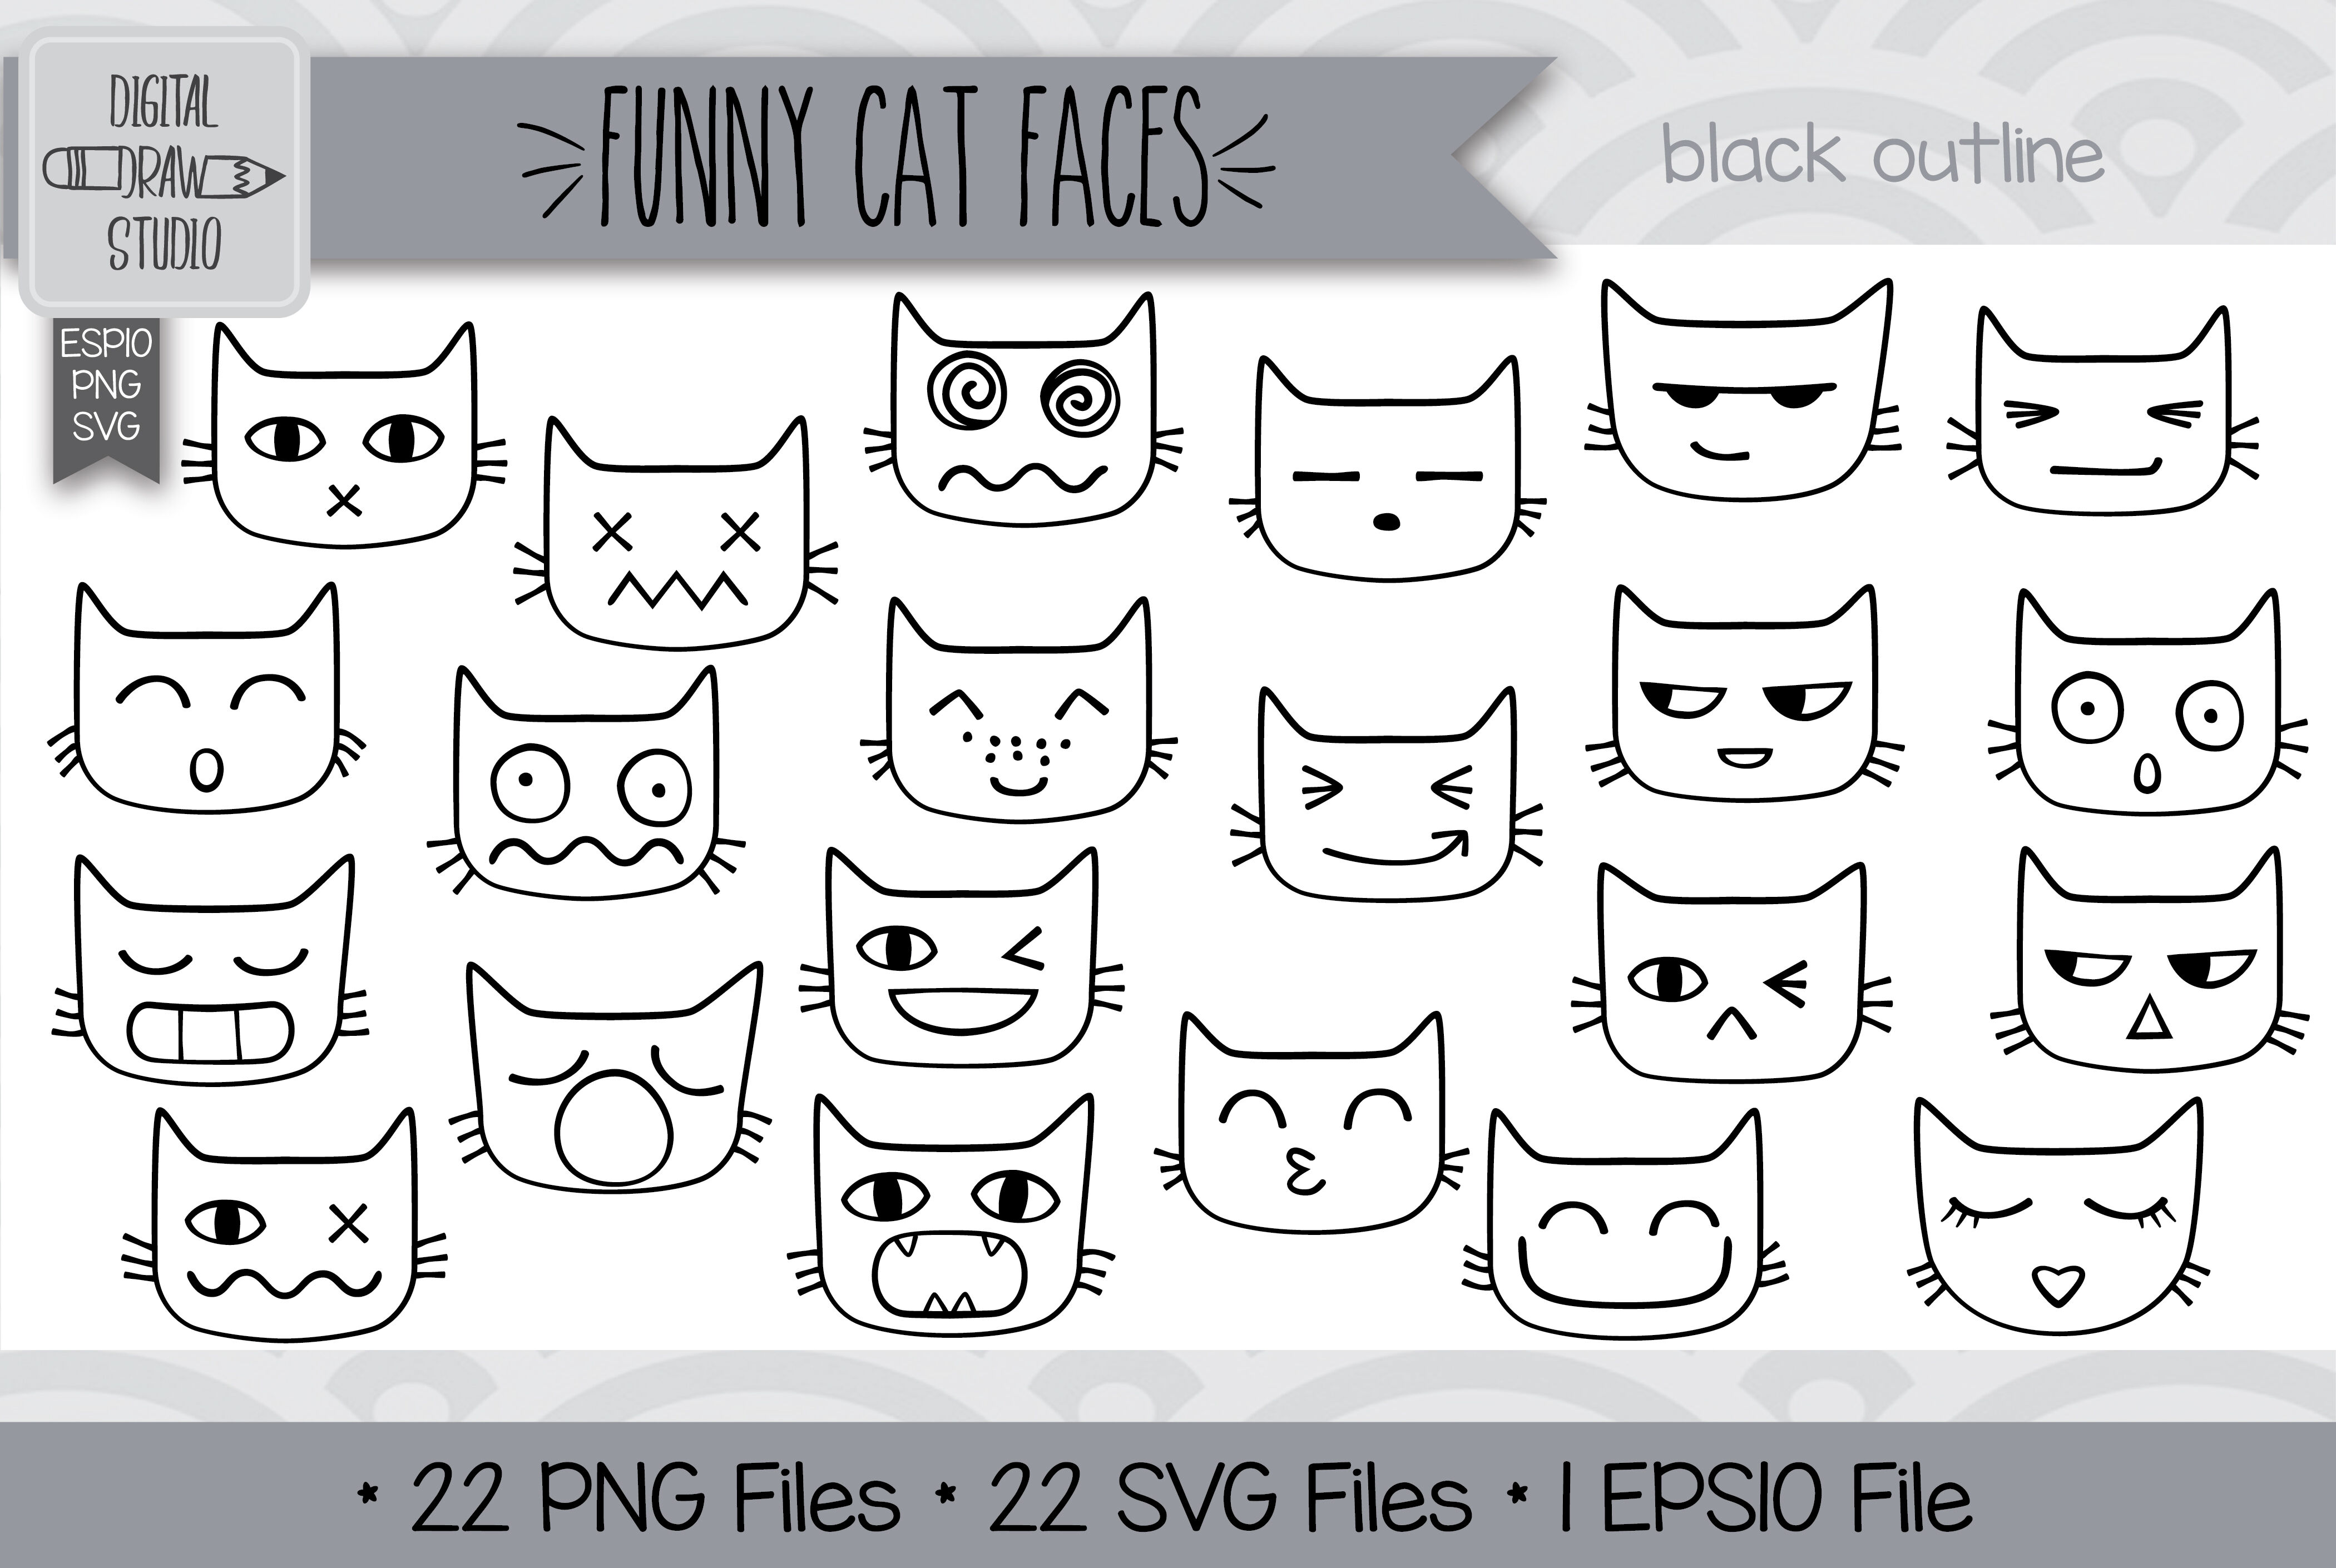 264 Funny Cat Faces Clip Art Hand Drawn Kawaii Cat Doodles By